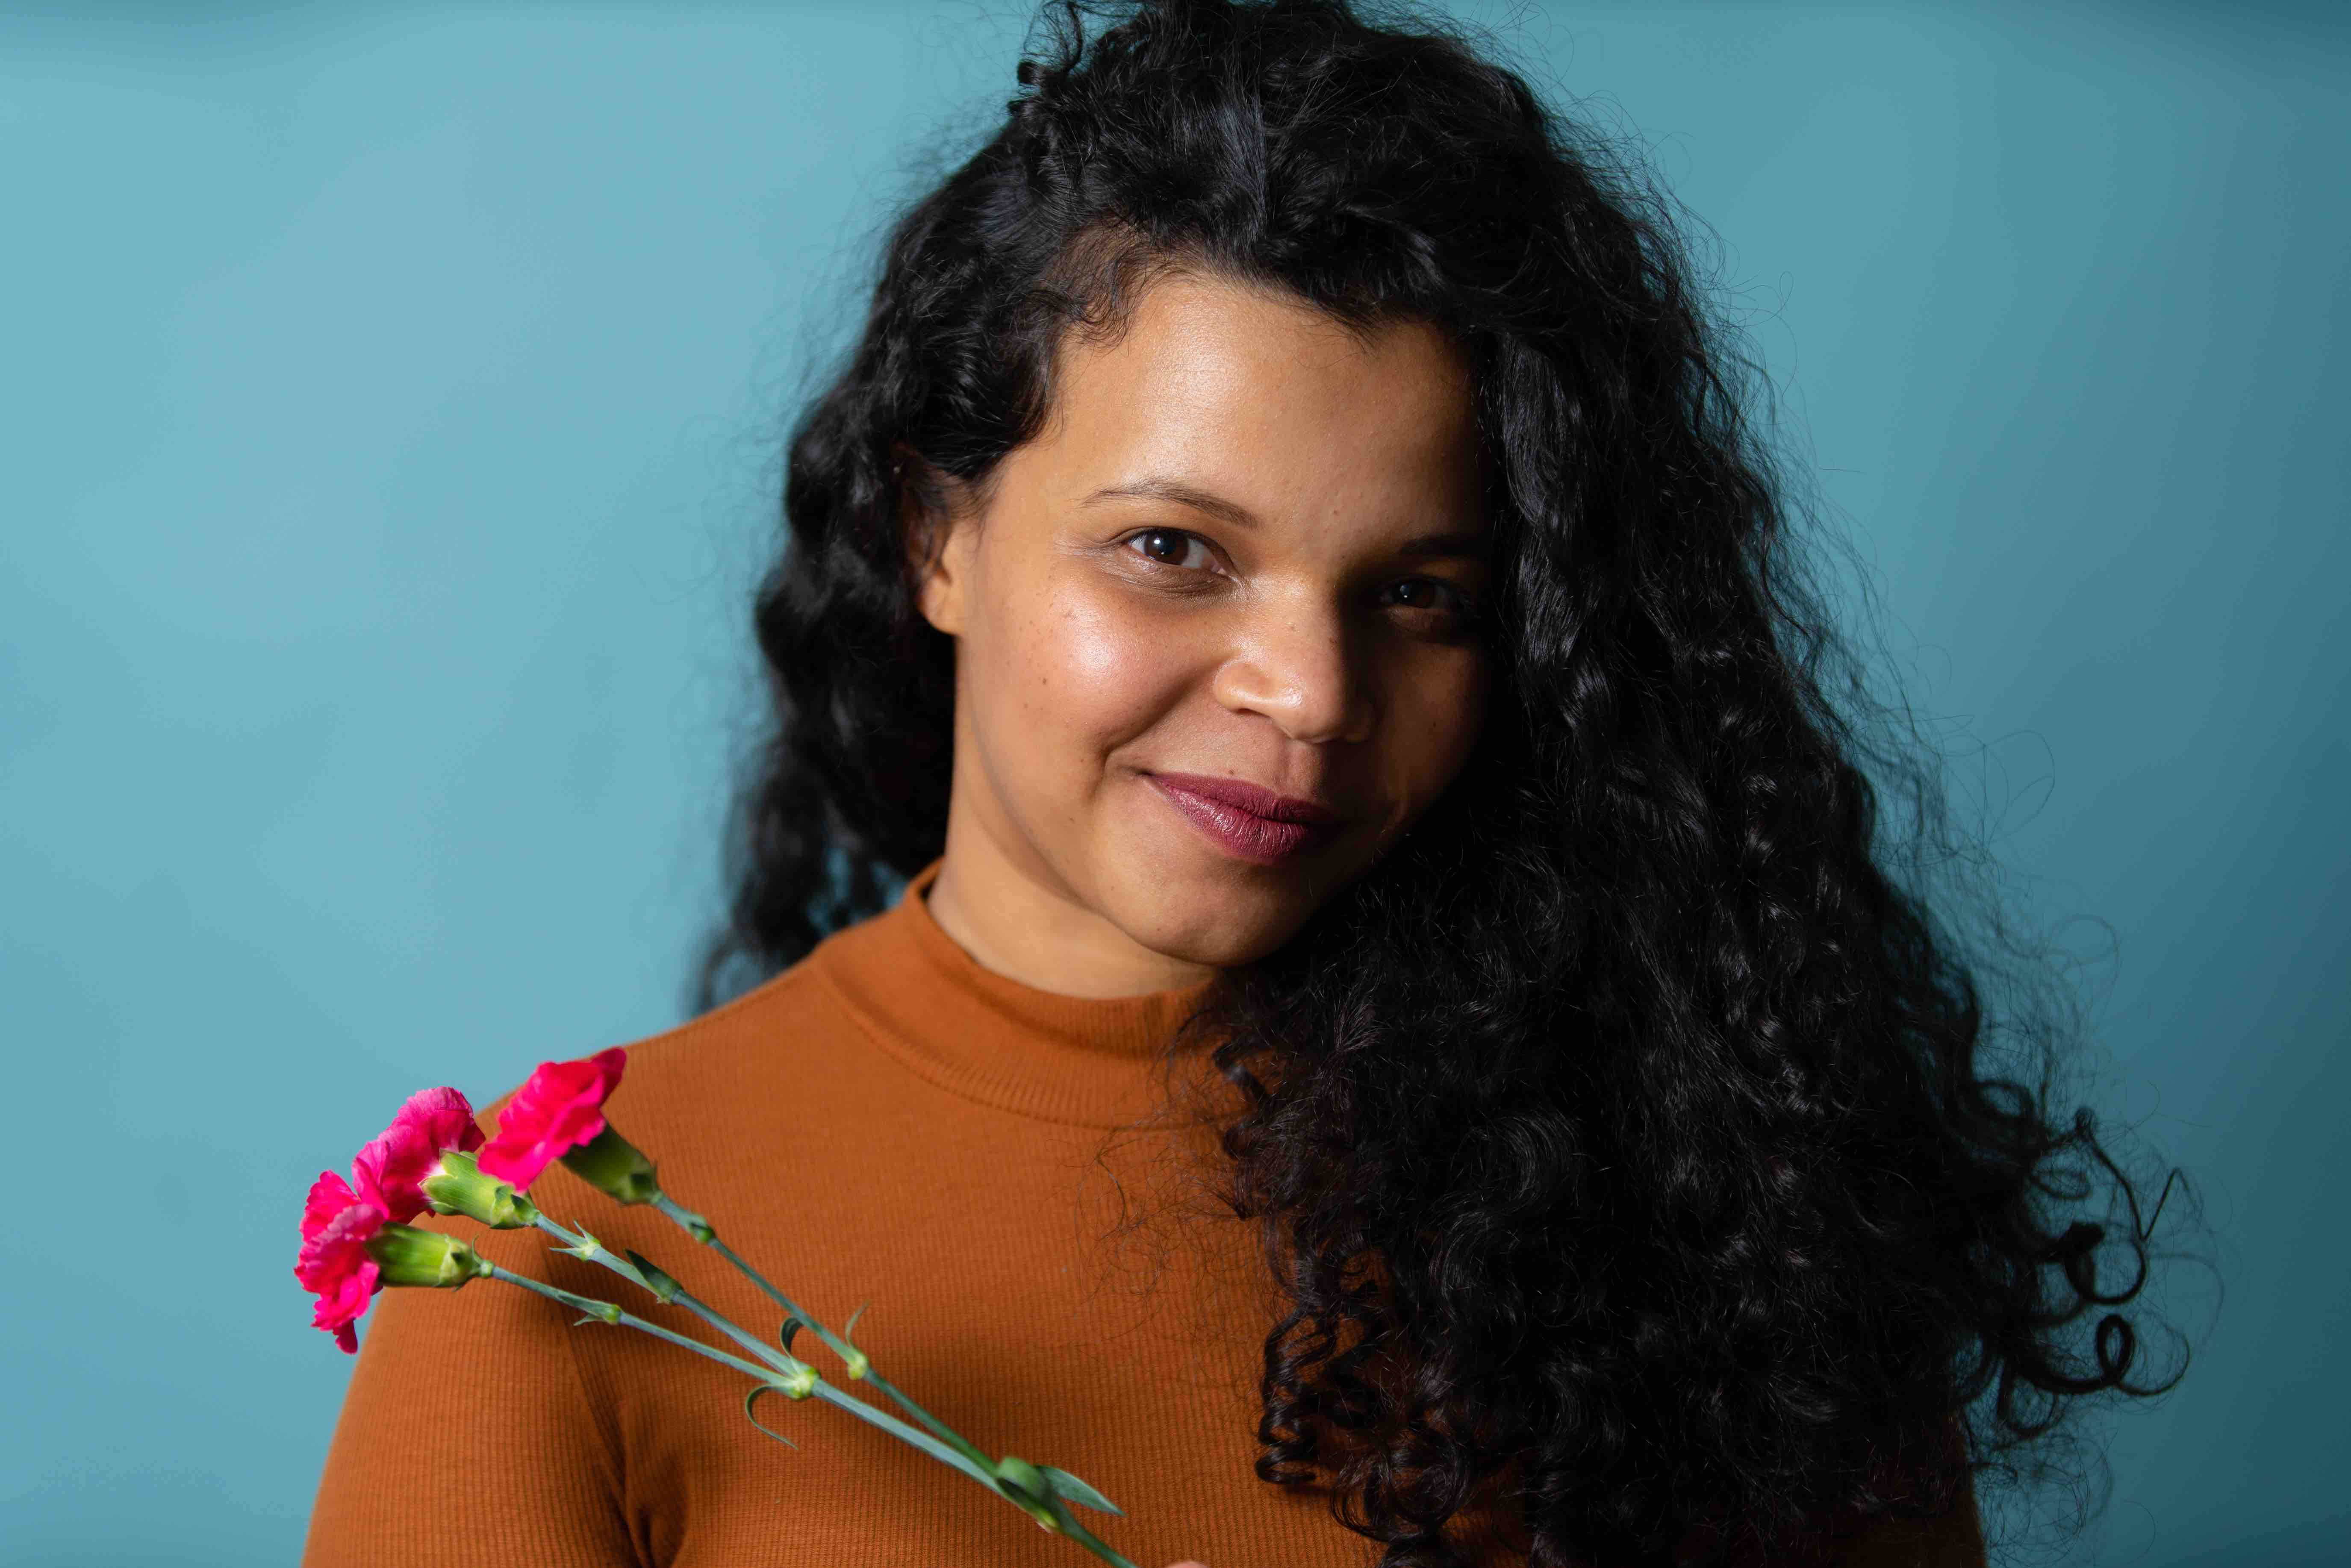 Amanda Alcántara Wanted to Tell an Untraditional Dominican Story, So She Decided to Self-Publish